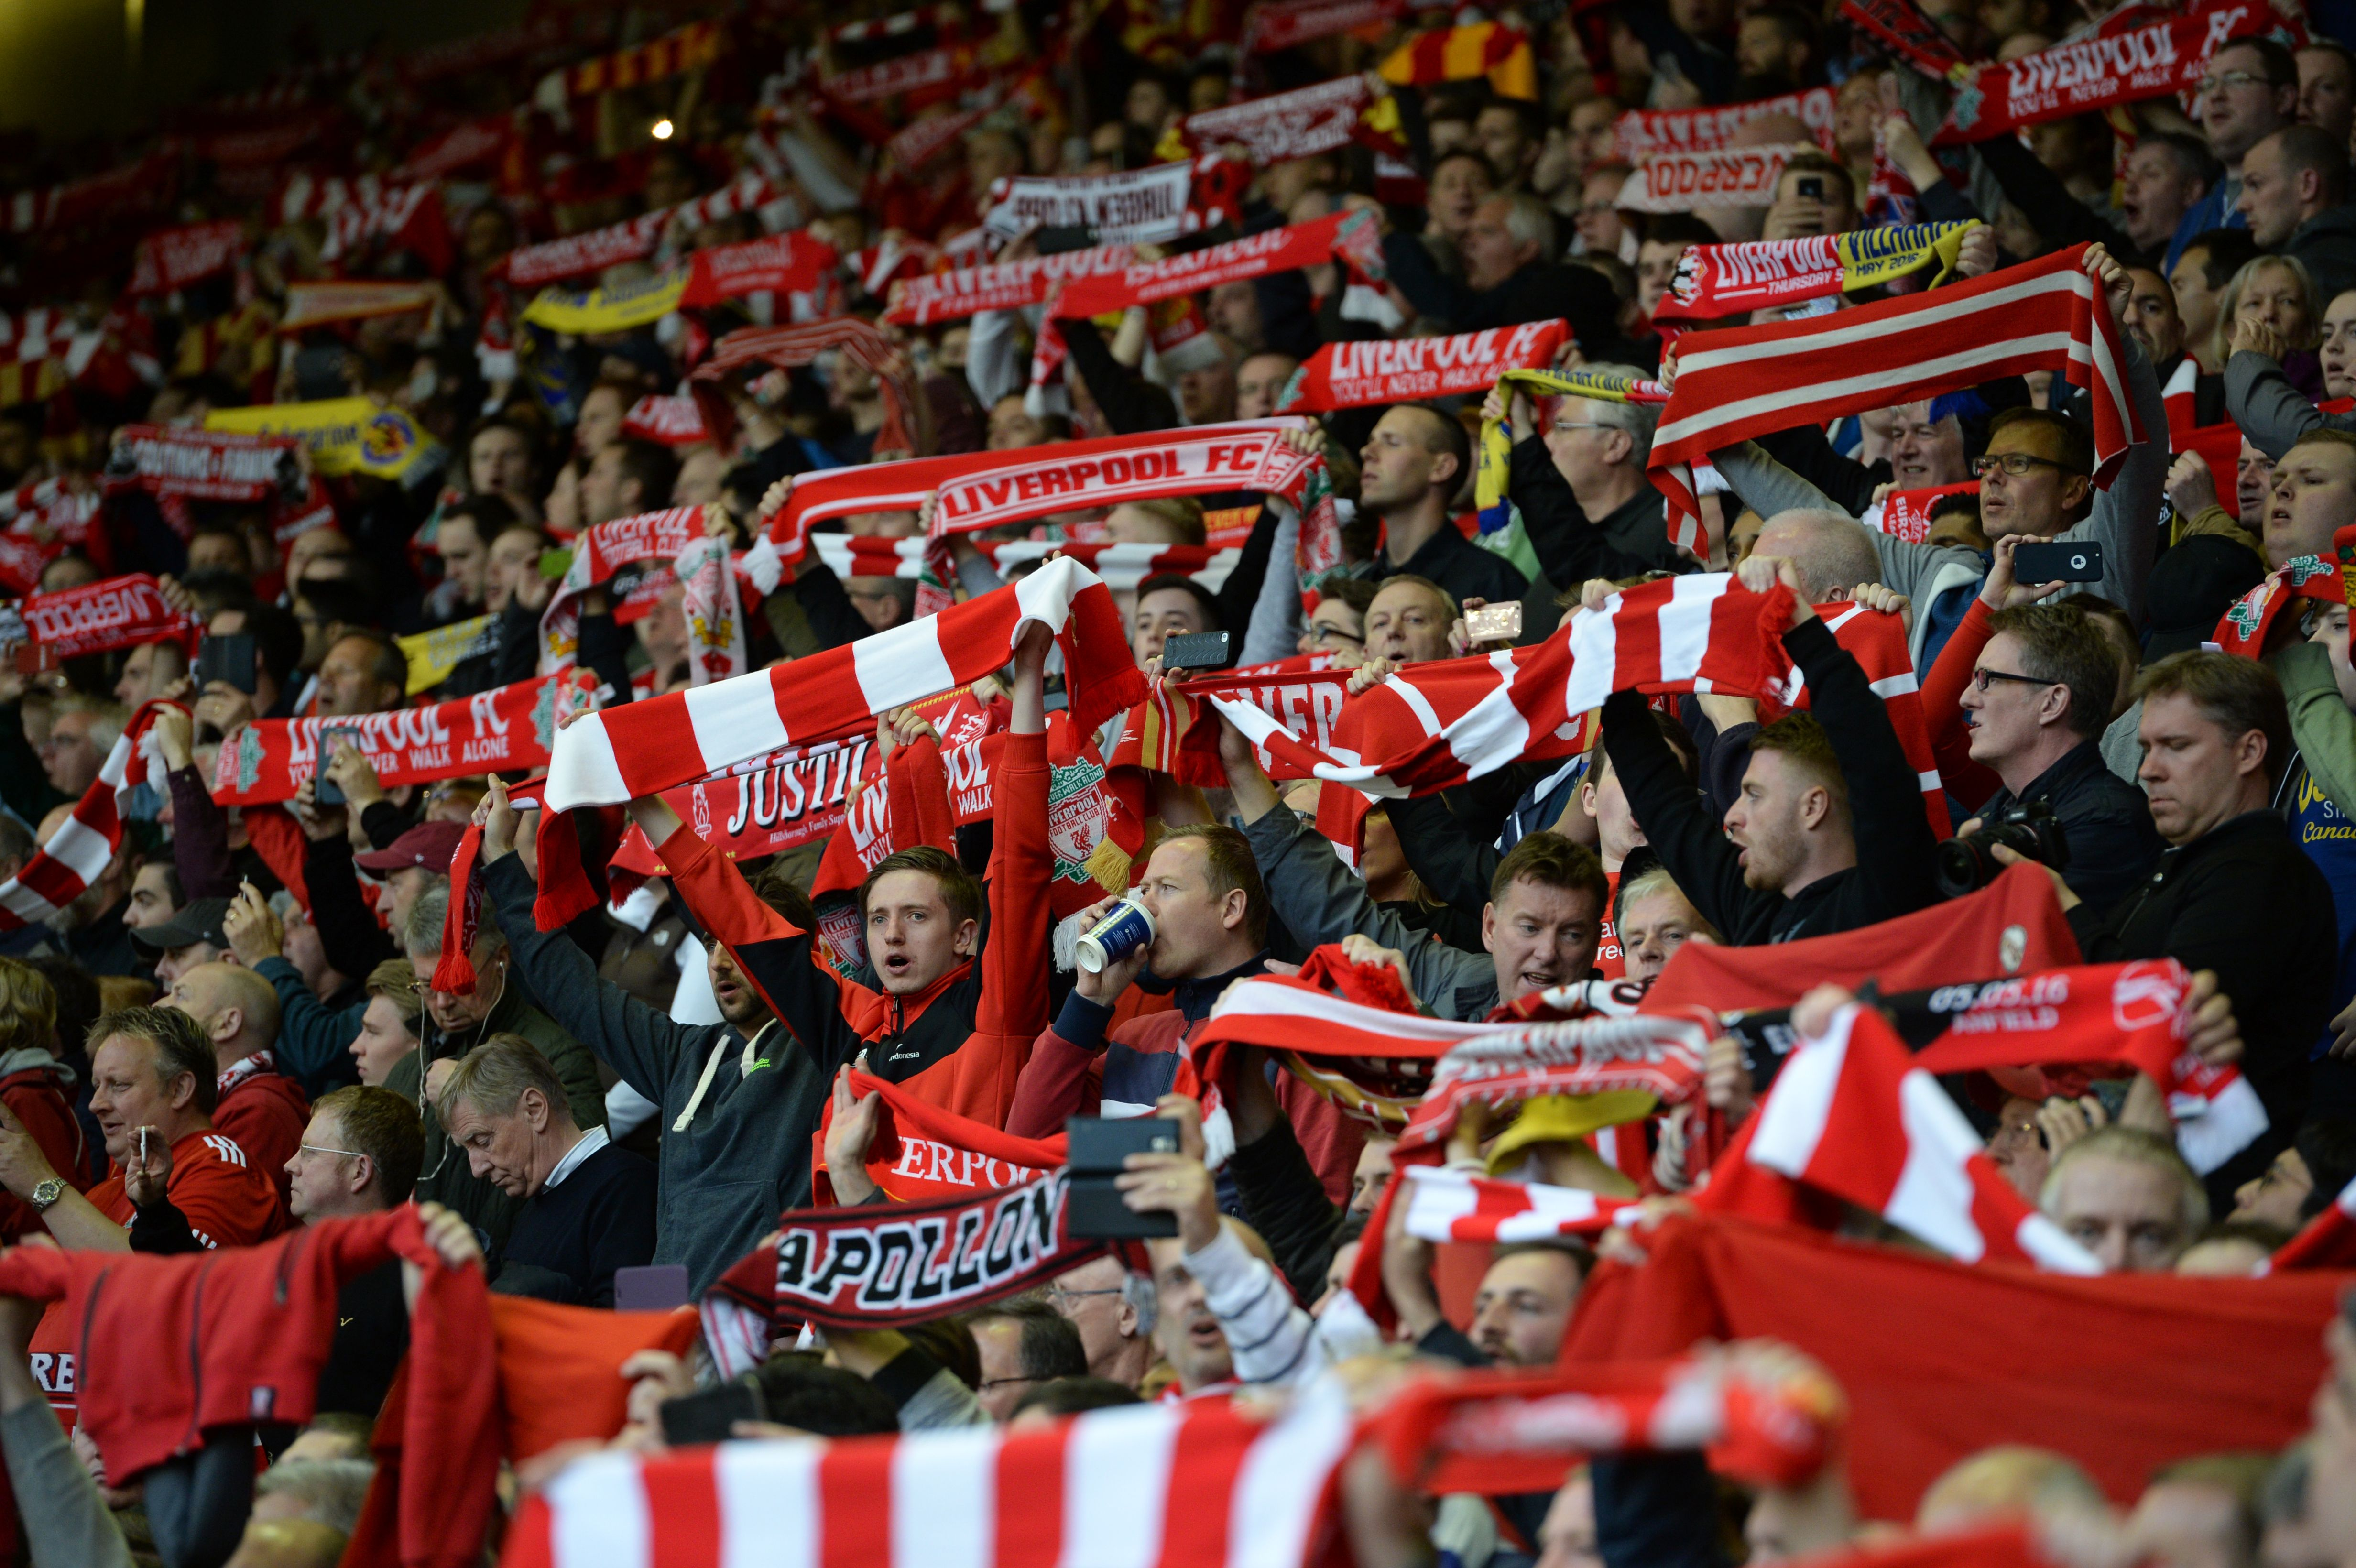 Liverpool fans cheer their team during the UEFA Europa League semi-final second leg football match between Liverpool and Villarreal CF at Anfield in Liverpool, northwest England on May 5, 2016. / AFP / OLI SCARFF (Photo credit should read OLI SCARFF/AFP/Getty Images)